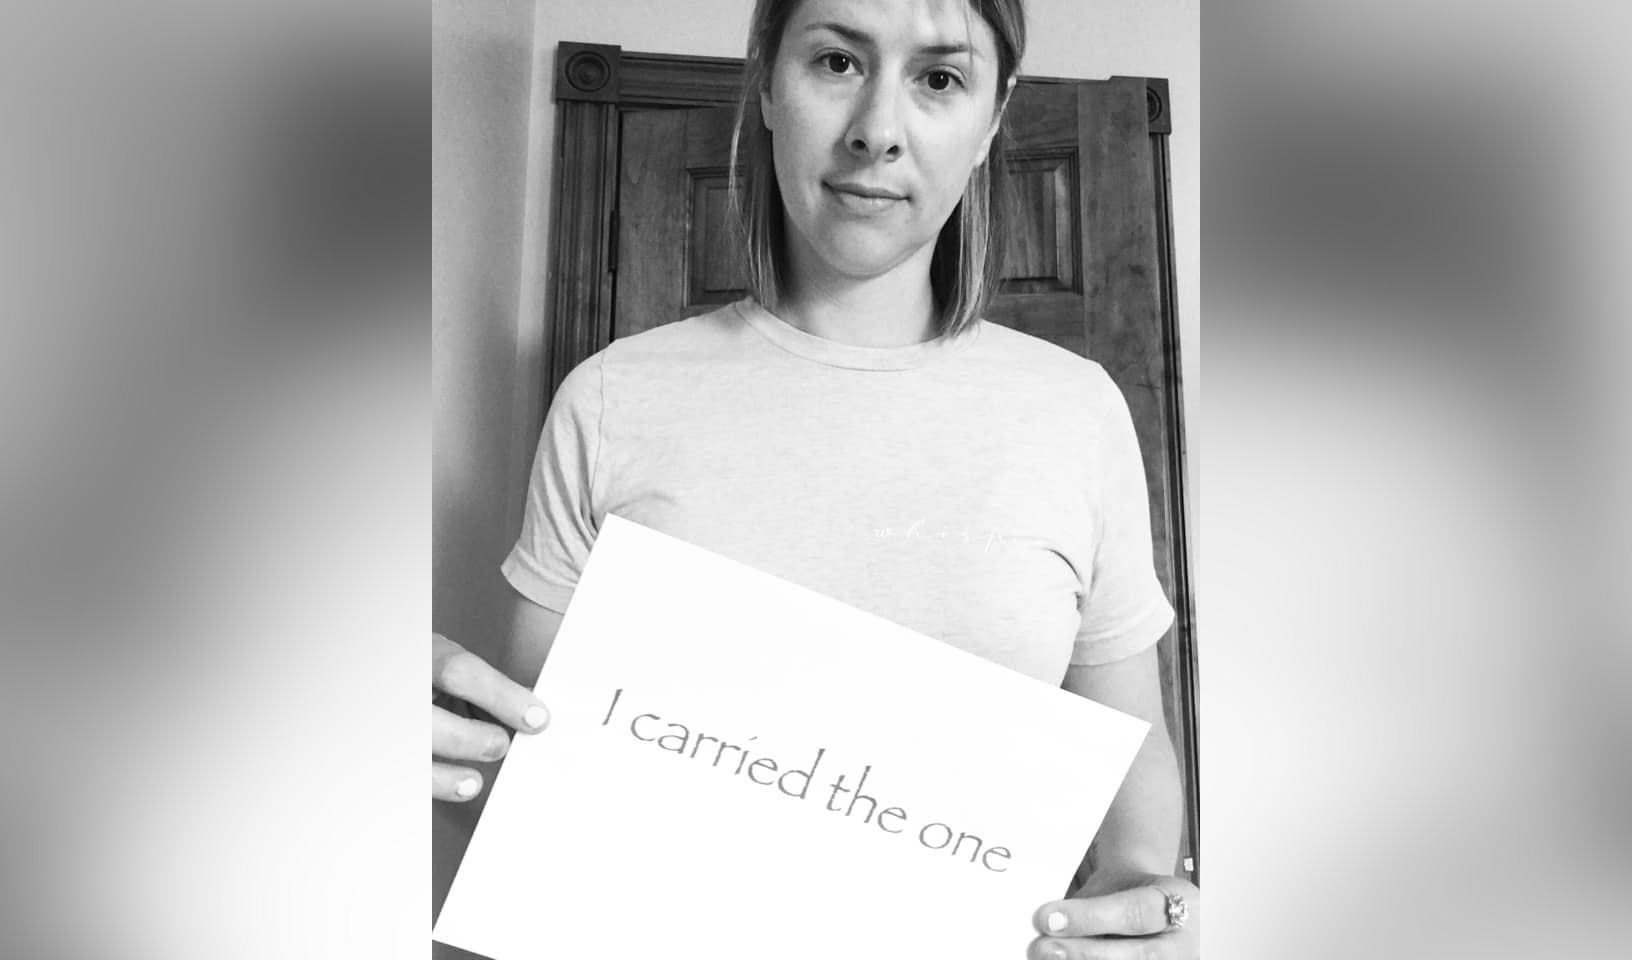 Black and white photo, woman holding sign that says I carried the one